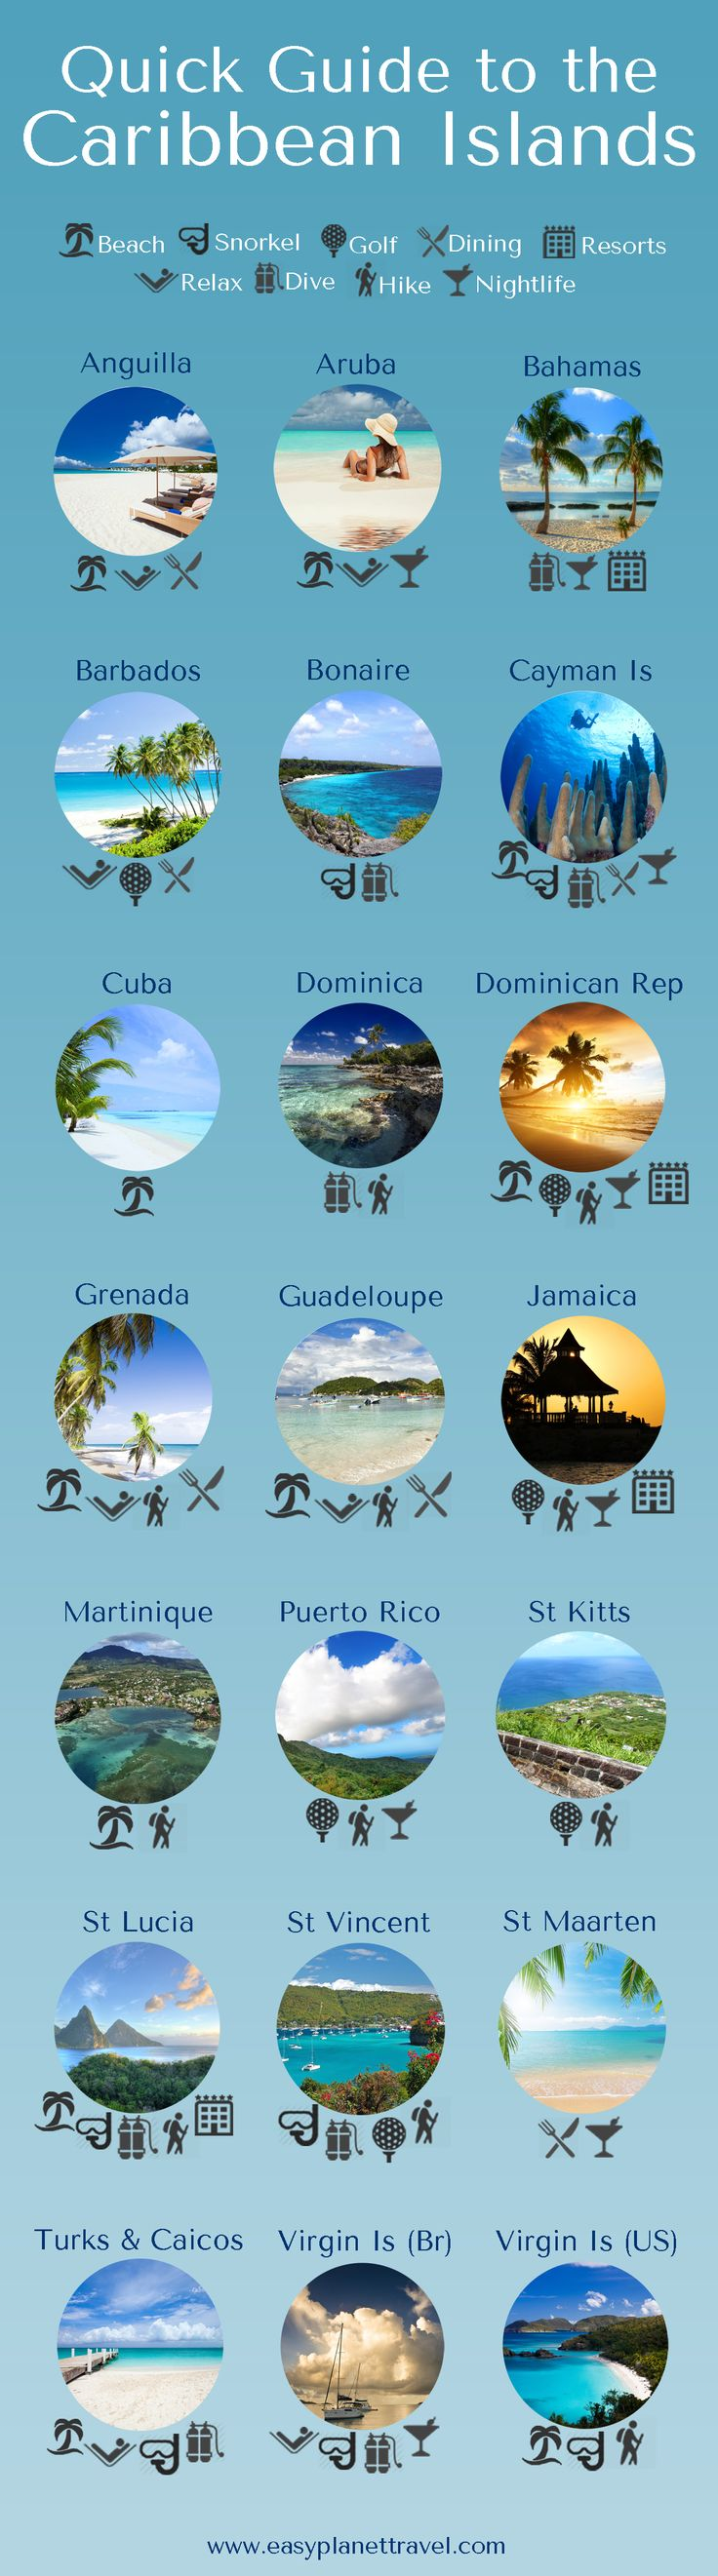 Use this Caribbean island guide to decide which island you should visit during your vacation to paradise!